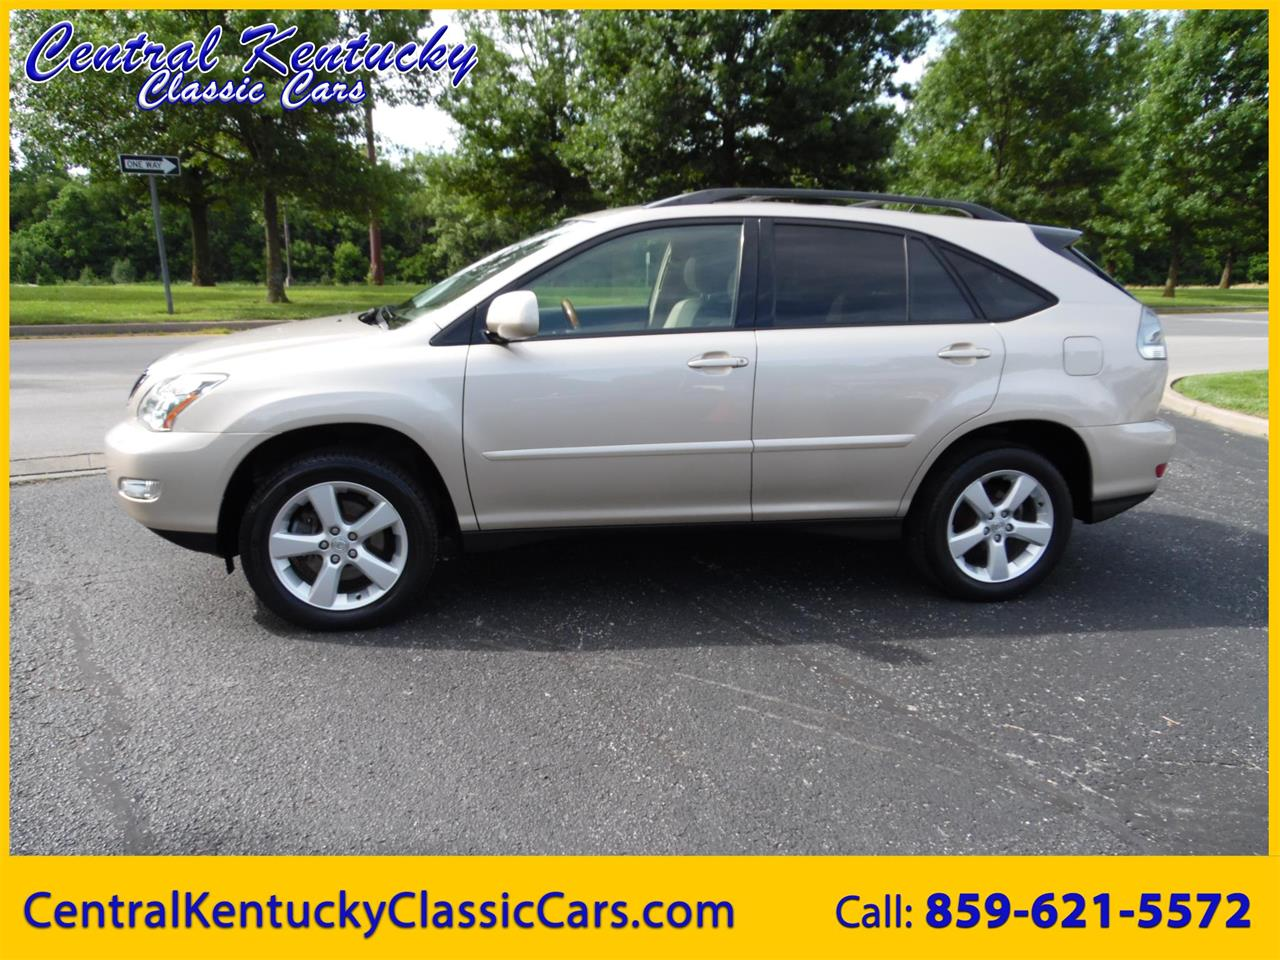 Large Picture of 2005 RX330 located in Paris  Kentucky - $9,990.00 Offered by Central Kentucky Classic Cars LLC  - QC3R